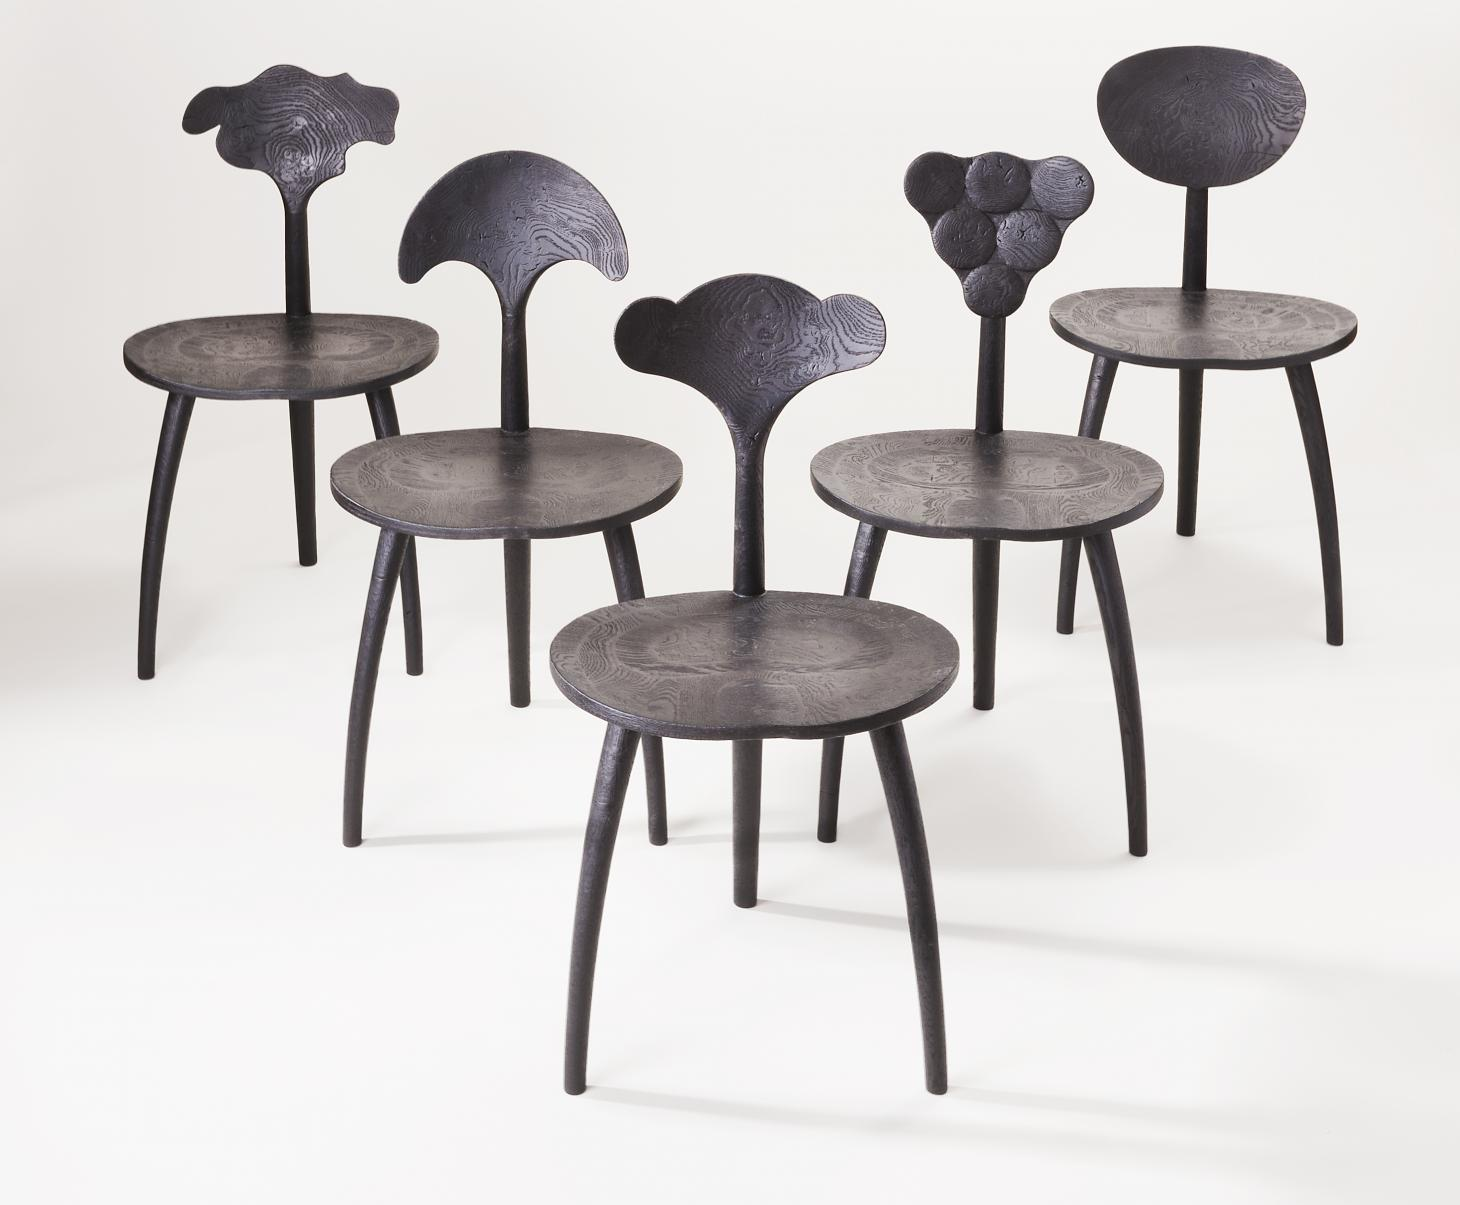 John Makepeace, Trine Chairs, Organic Collection, 2017